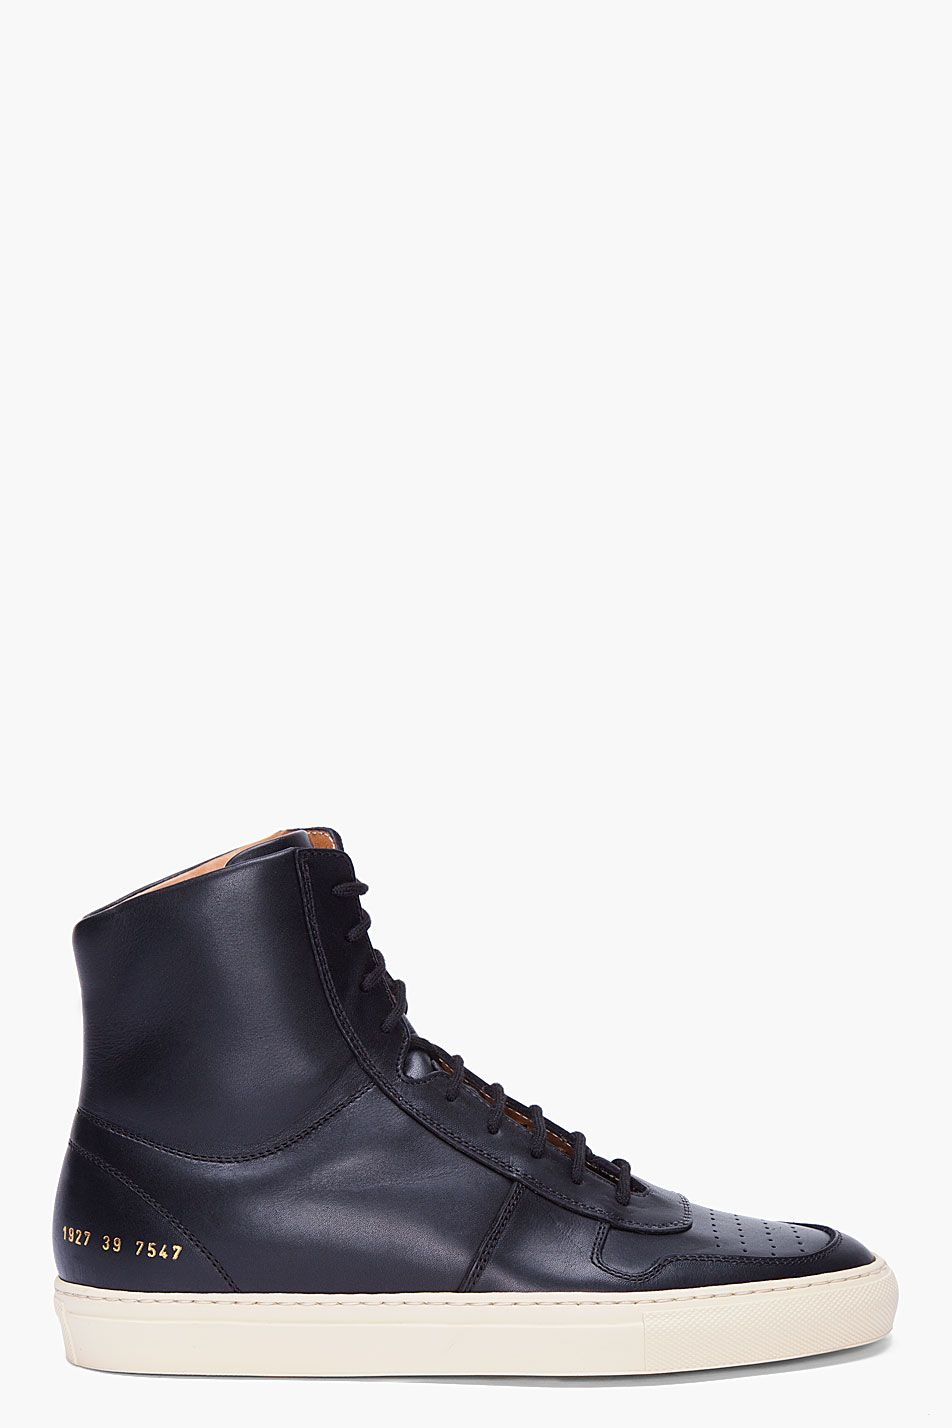 d7ad7320856f COMMON PROJECTS Black Vintage Basketball Sneakers